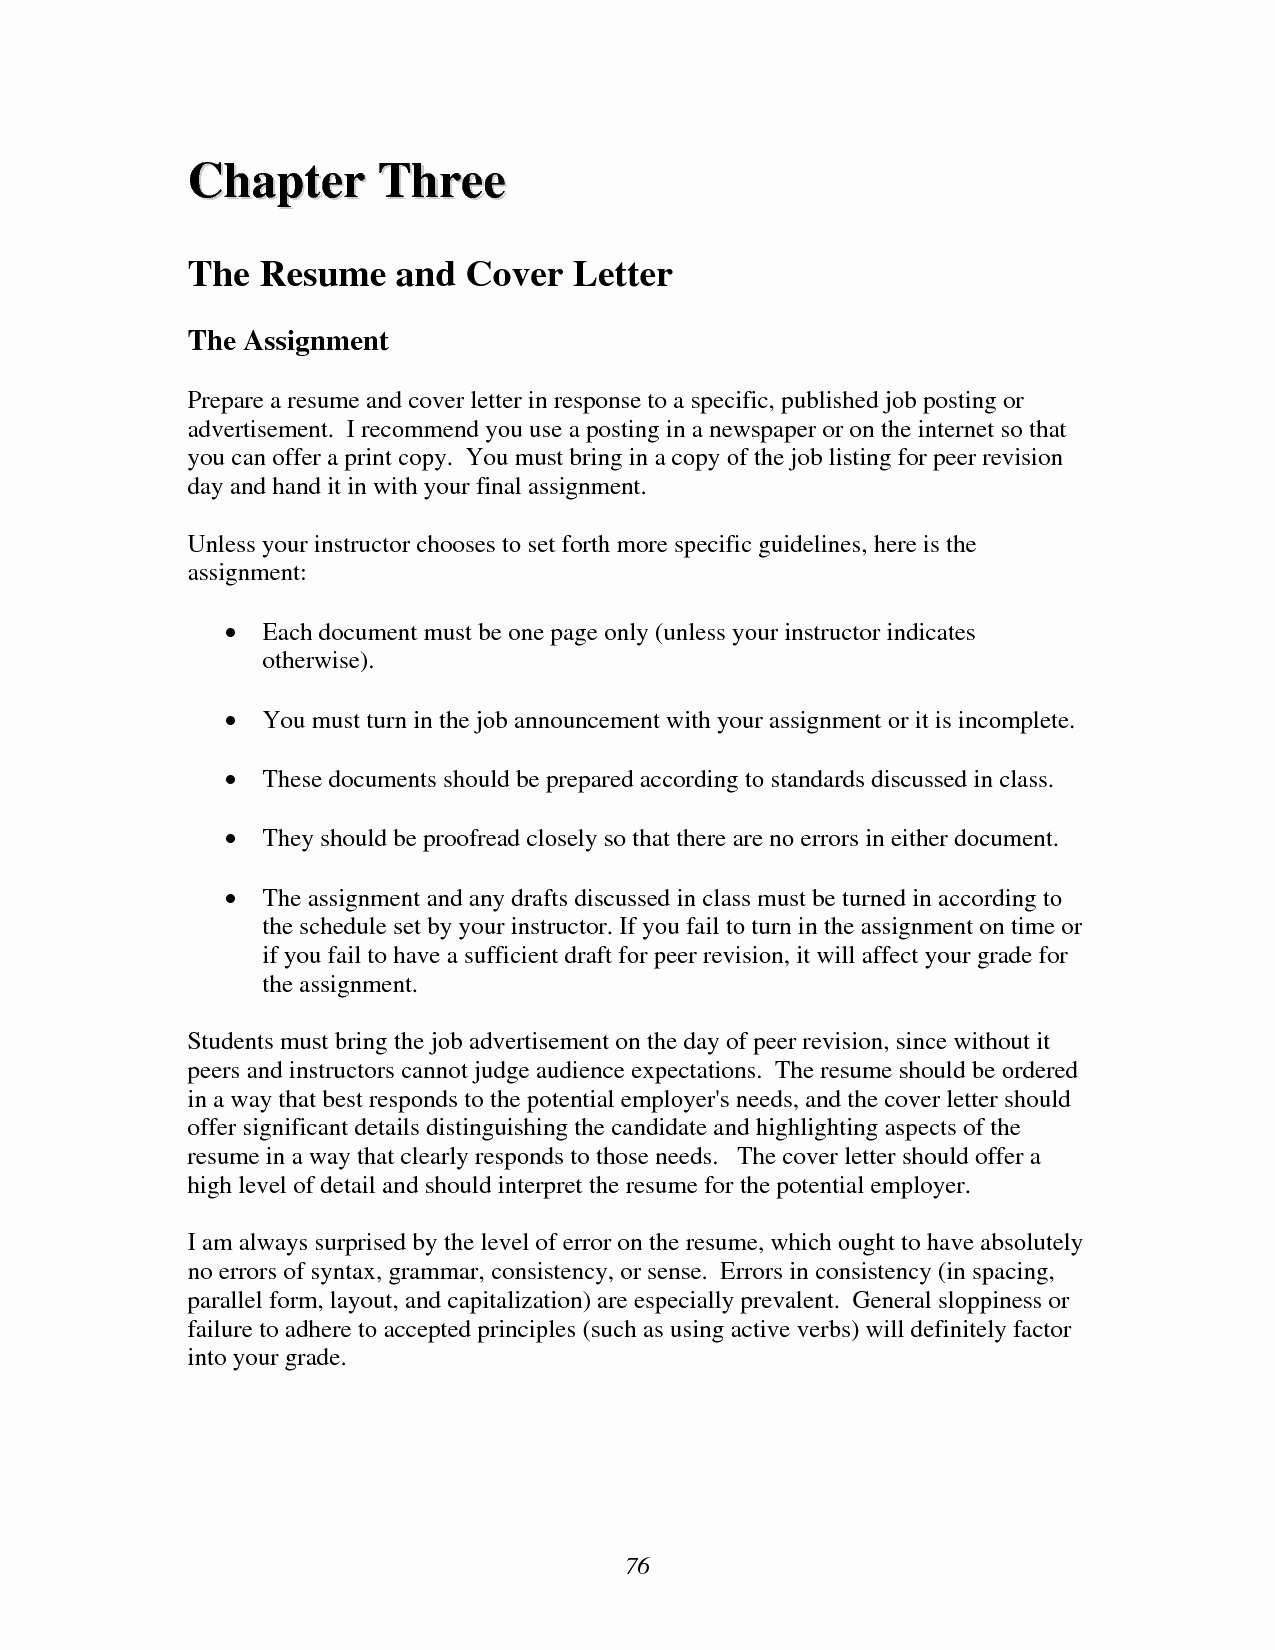 Writing A Cover Letter Template - Sample Cover Letter for A Job New Job Fer Letter Template Us Copy